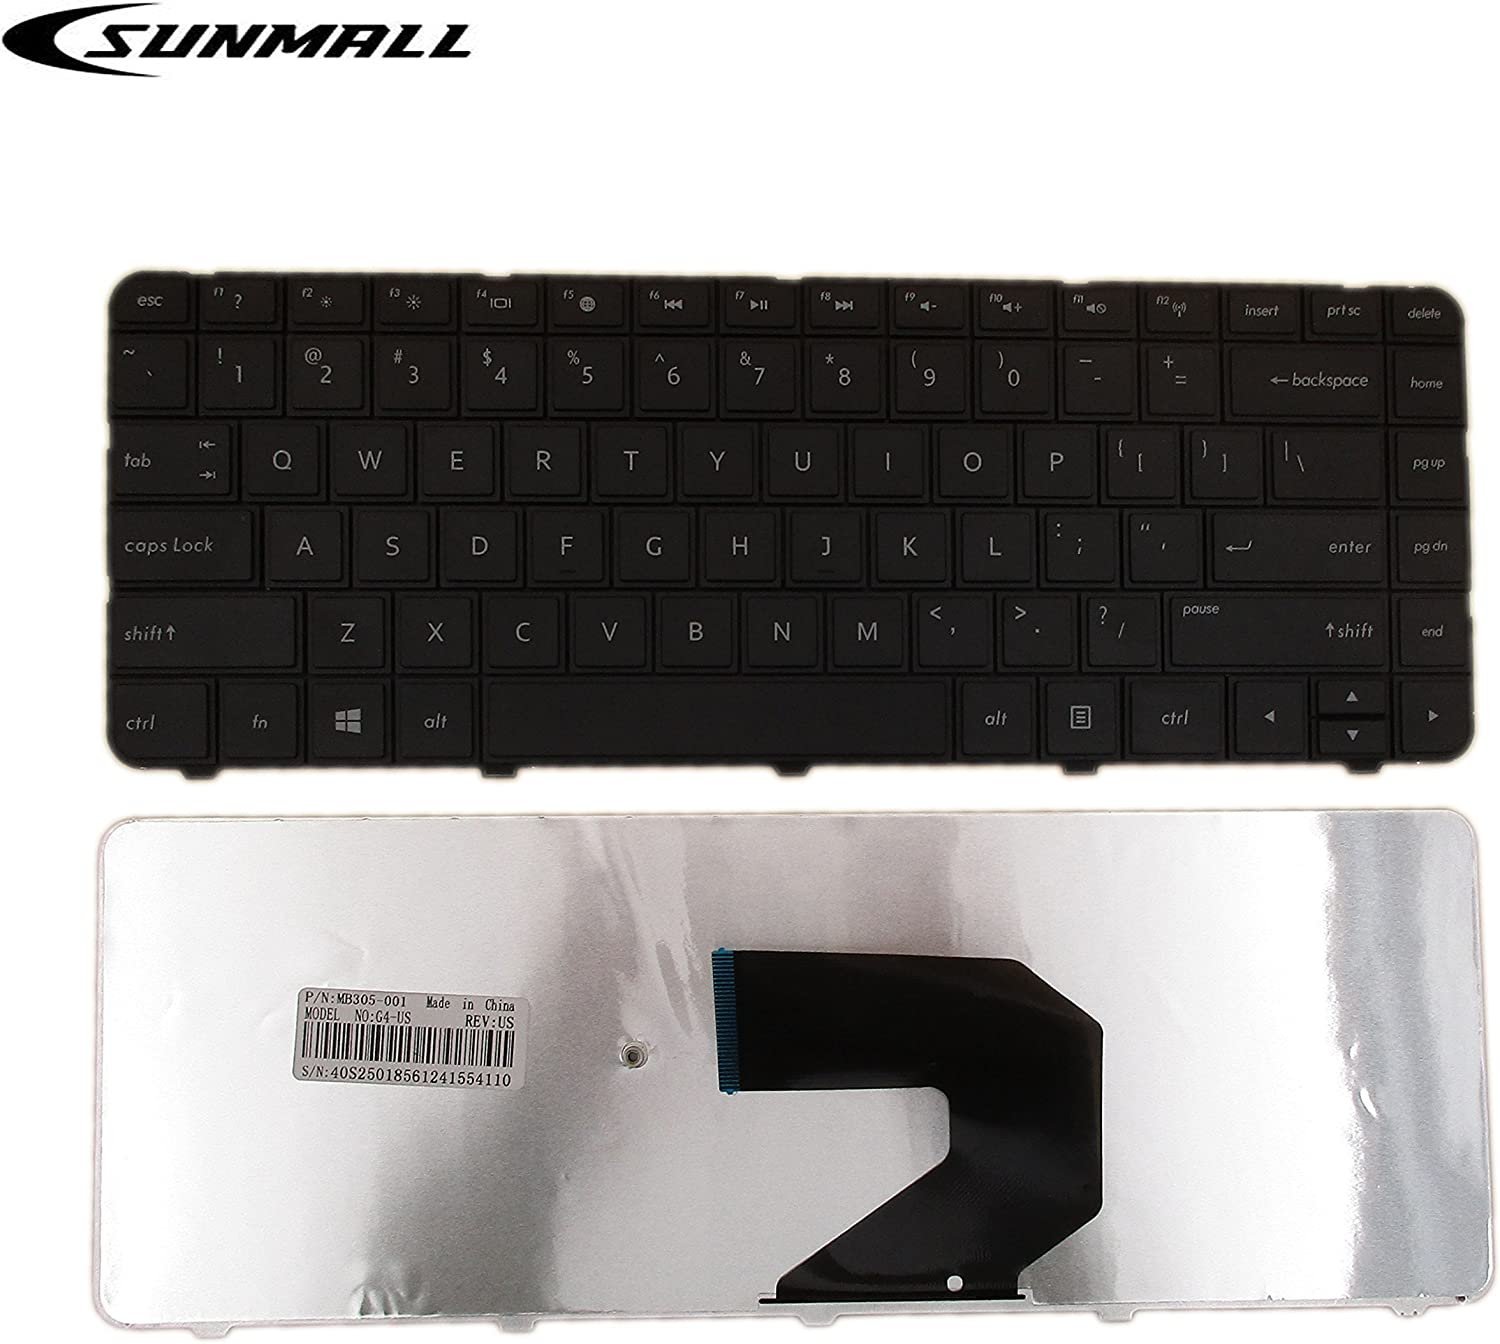 SUNMALL New Laptop Replacement Keyboard for HP 2000-100 2000-200 2000-300 2000T-300 2000-400 2000-340CA 2000-350US 2000-351NR 2000-352NR 2000-2d07CA 2000-2d09CA 2000-2d09WM Series Black US Layout